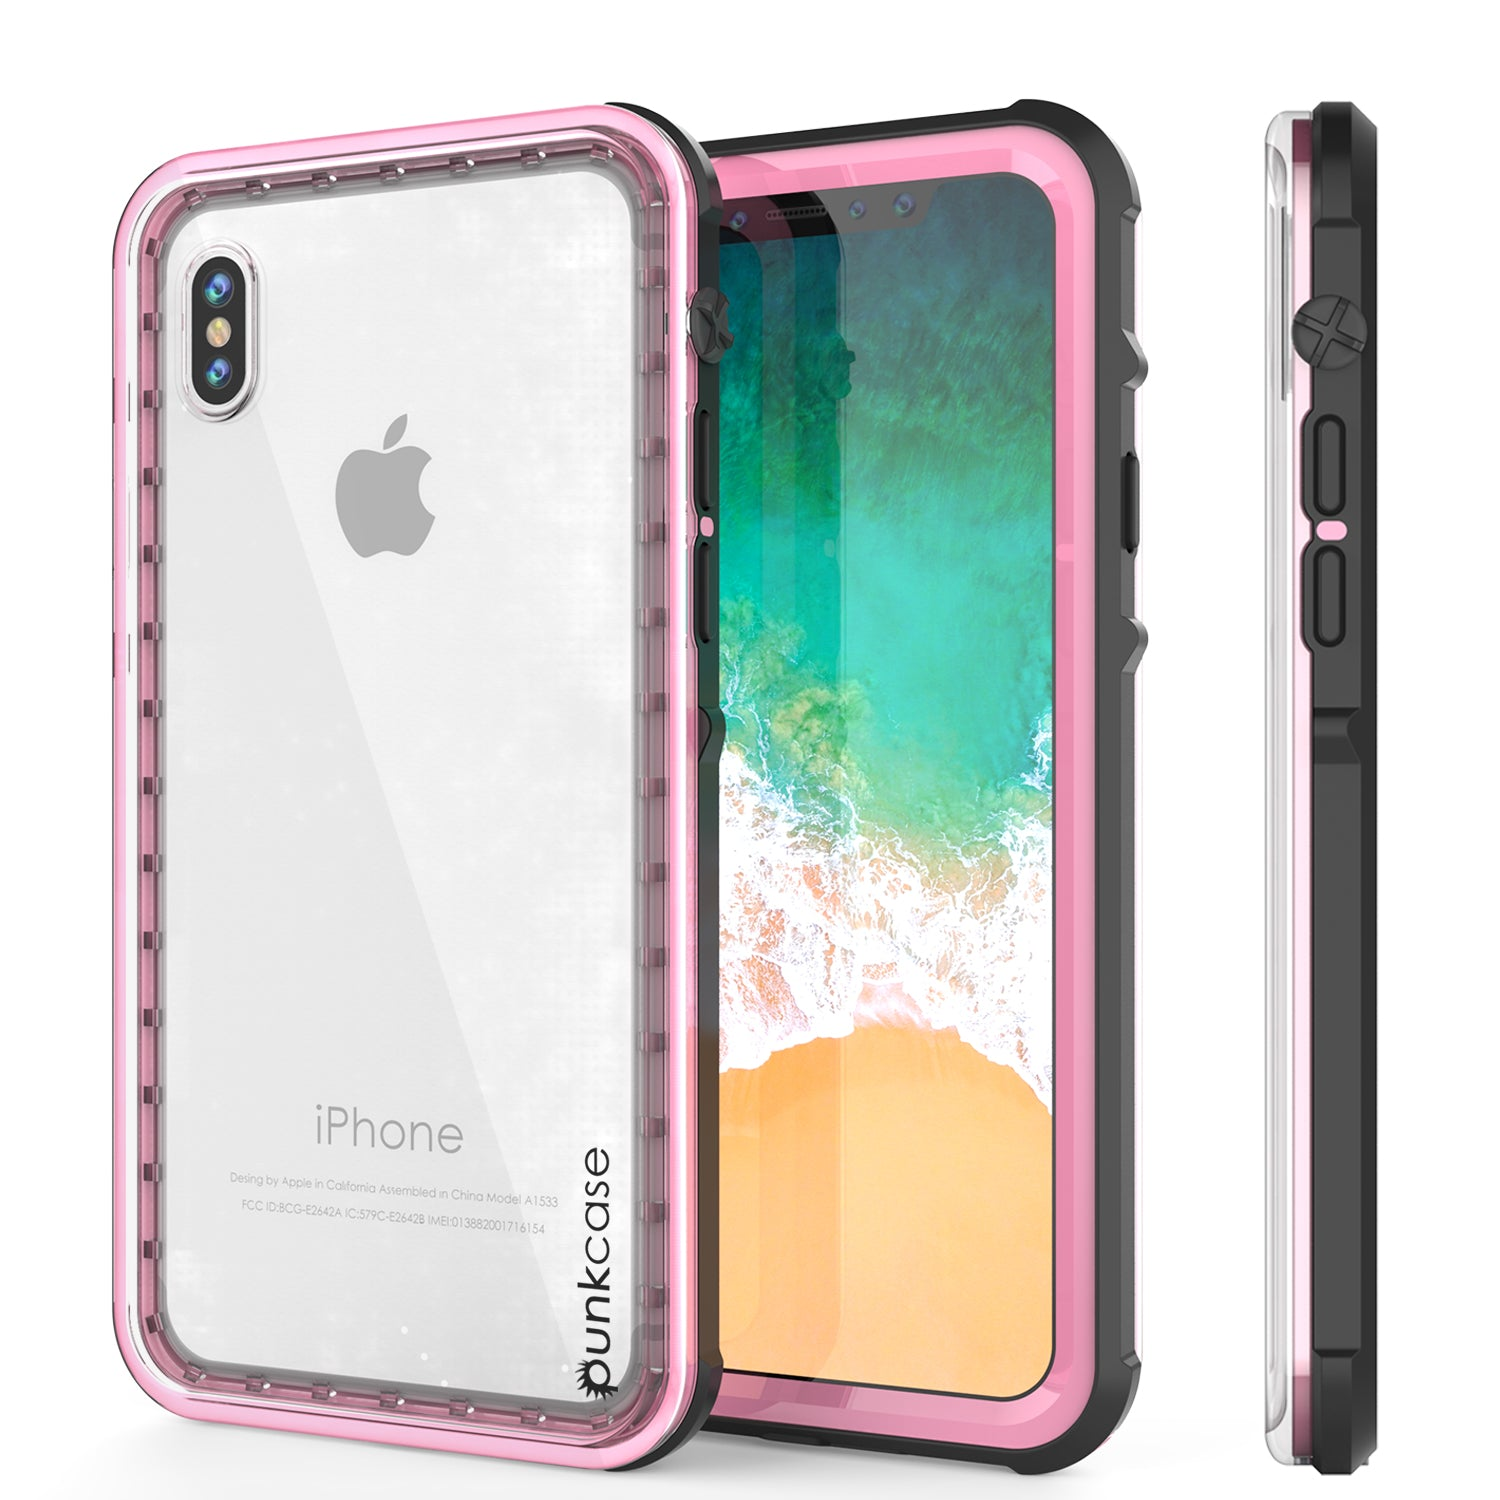 iPhone X Case, PUNKCase [CRYSTAL SERIES] Protective IP68 Certified Cover [Pink]